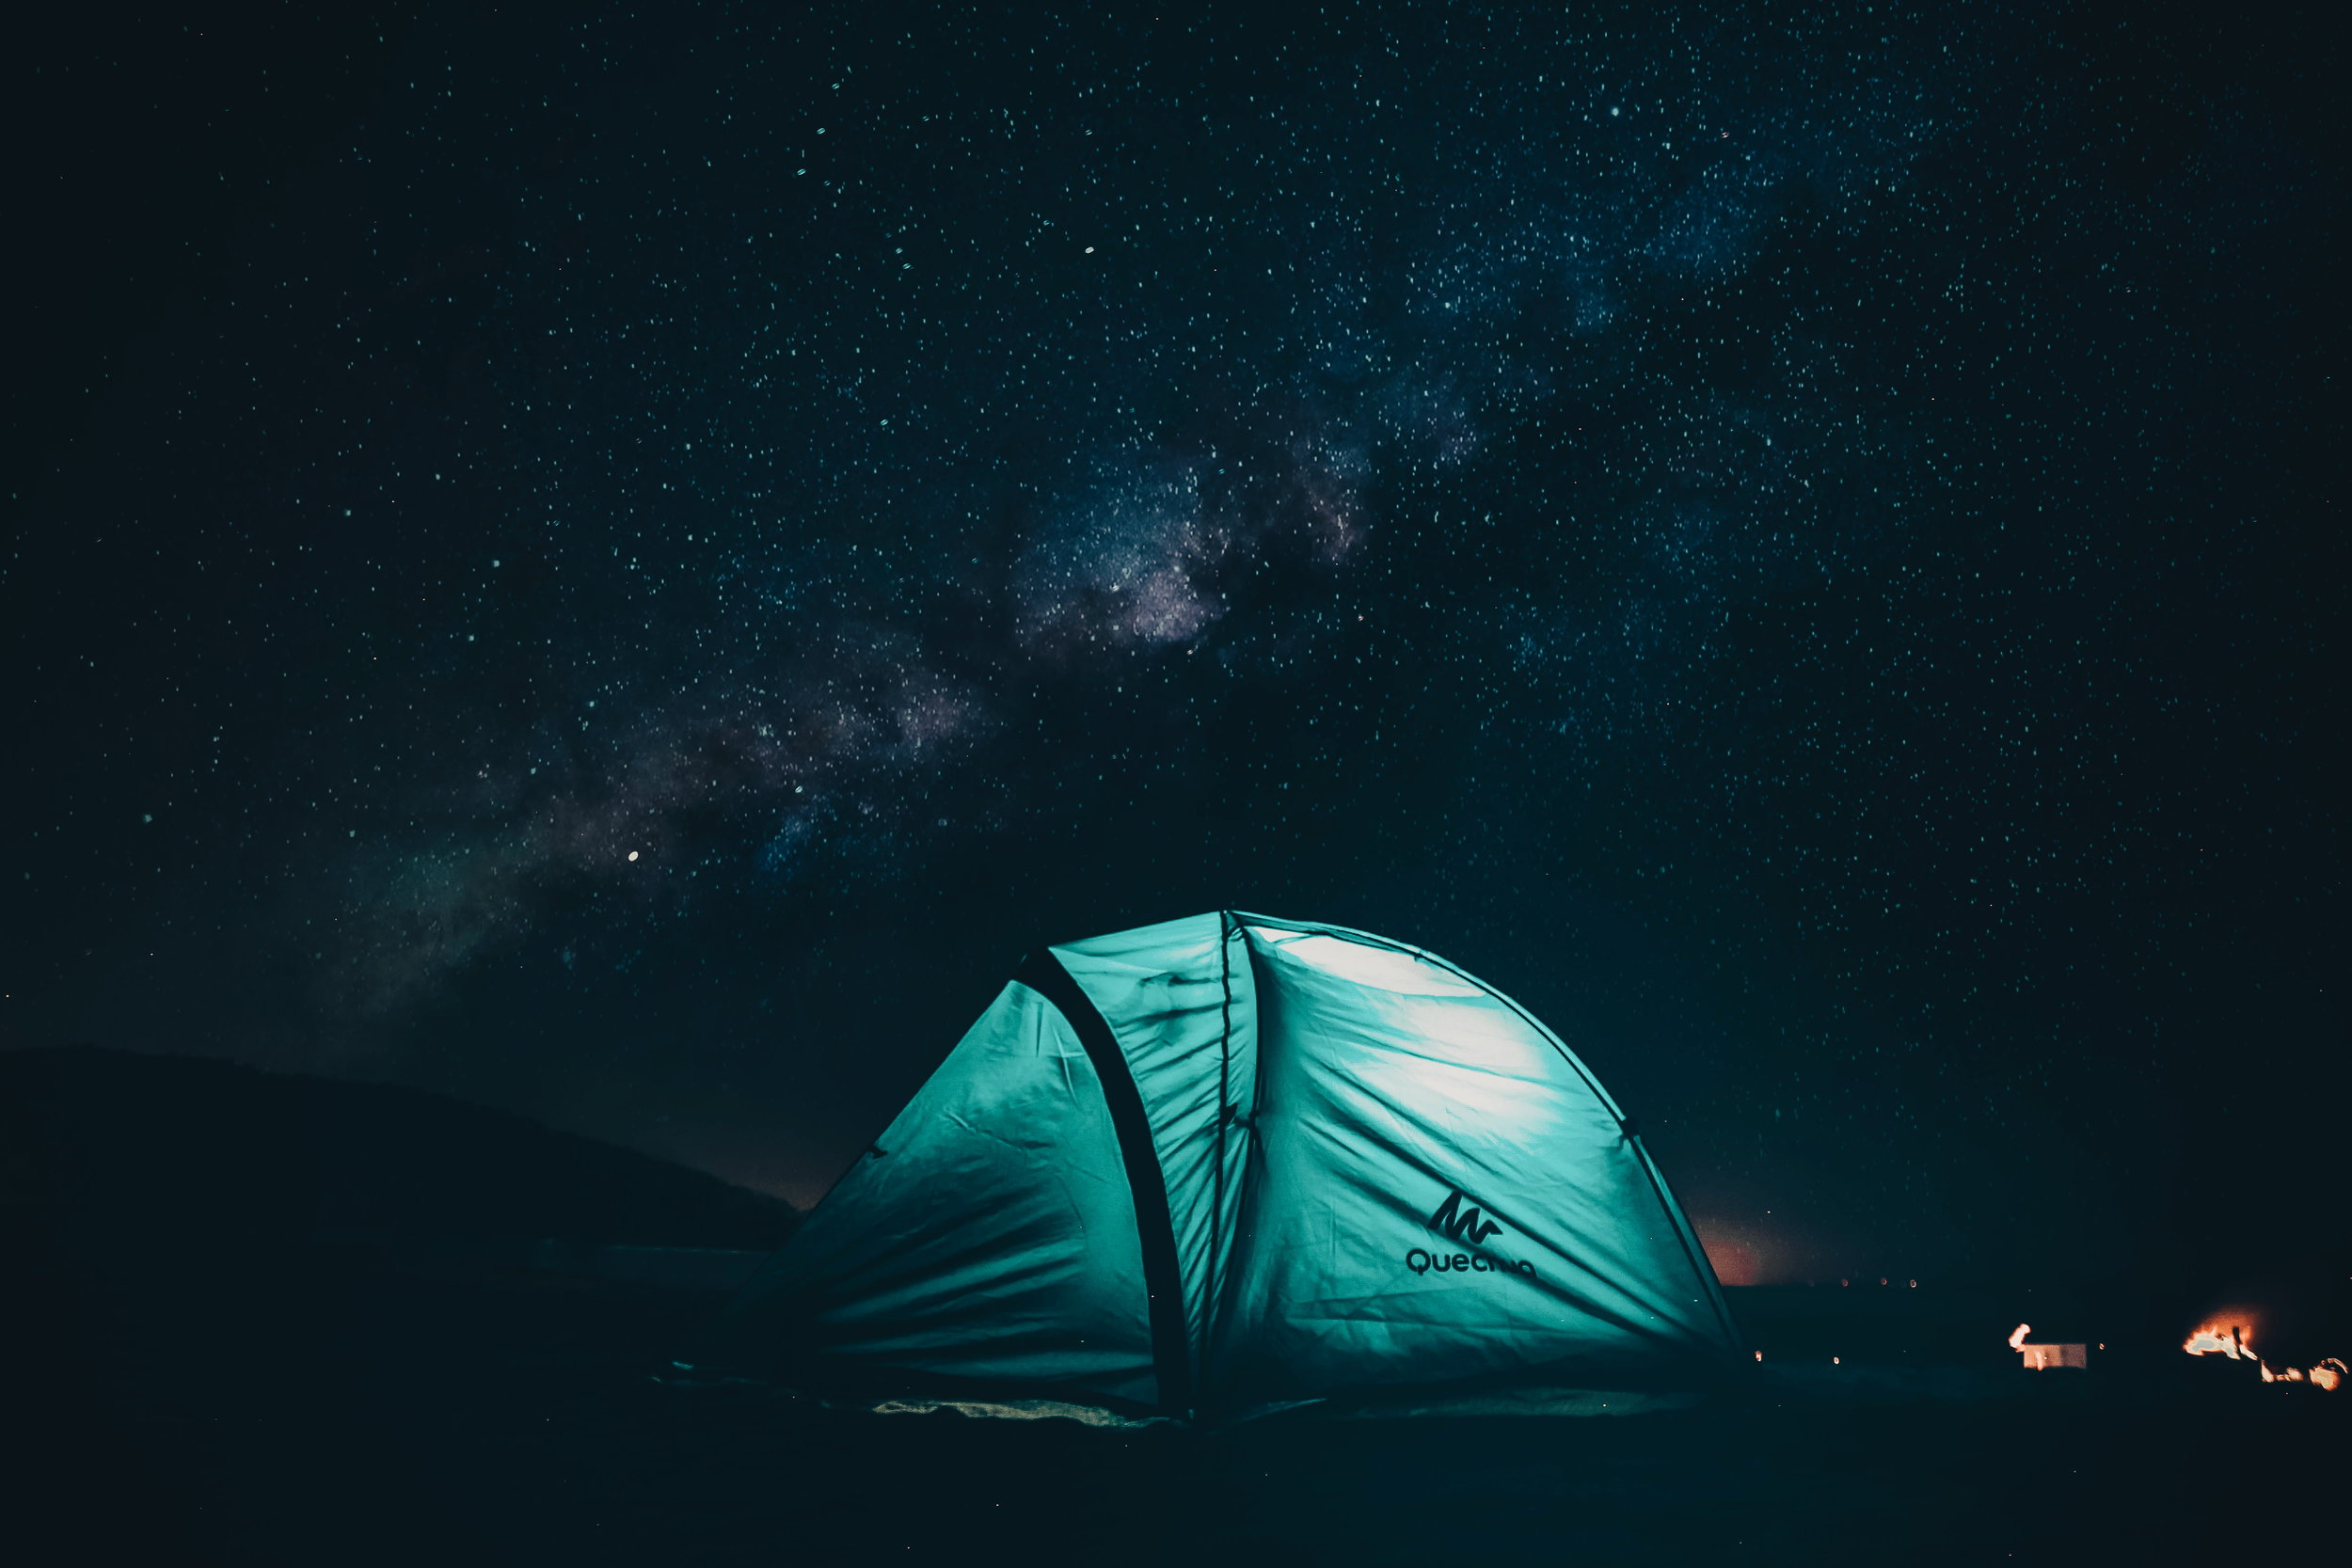 Real & Safe - Tent sleepover Under the Stars